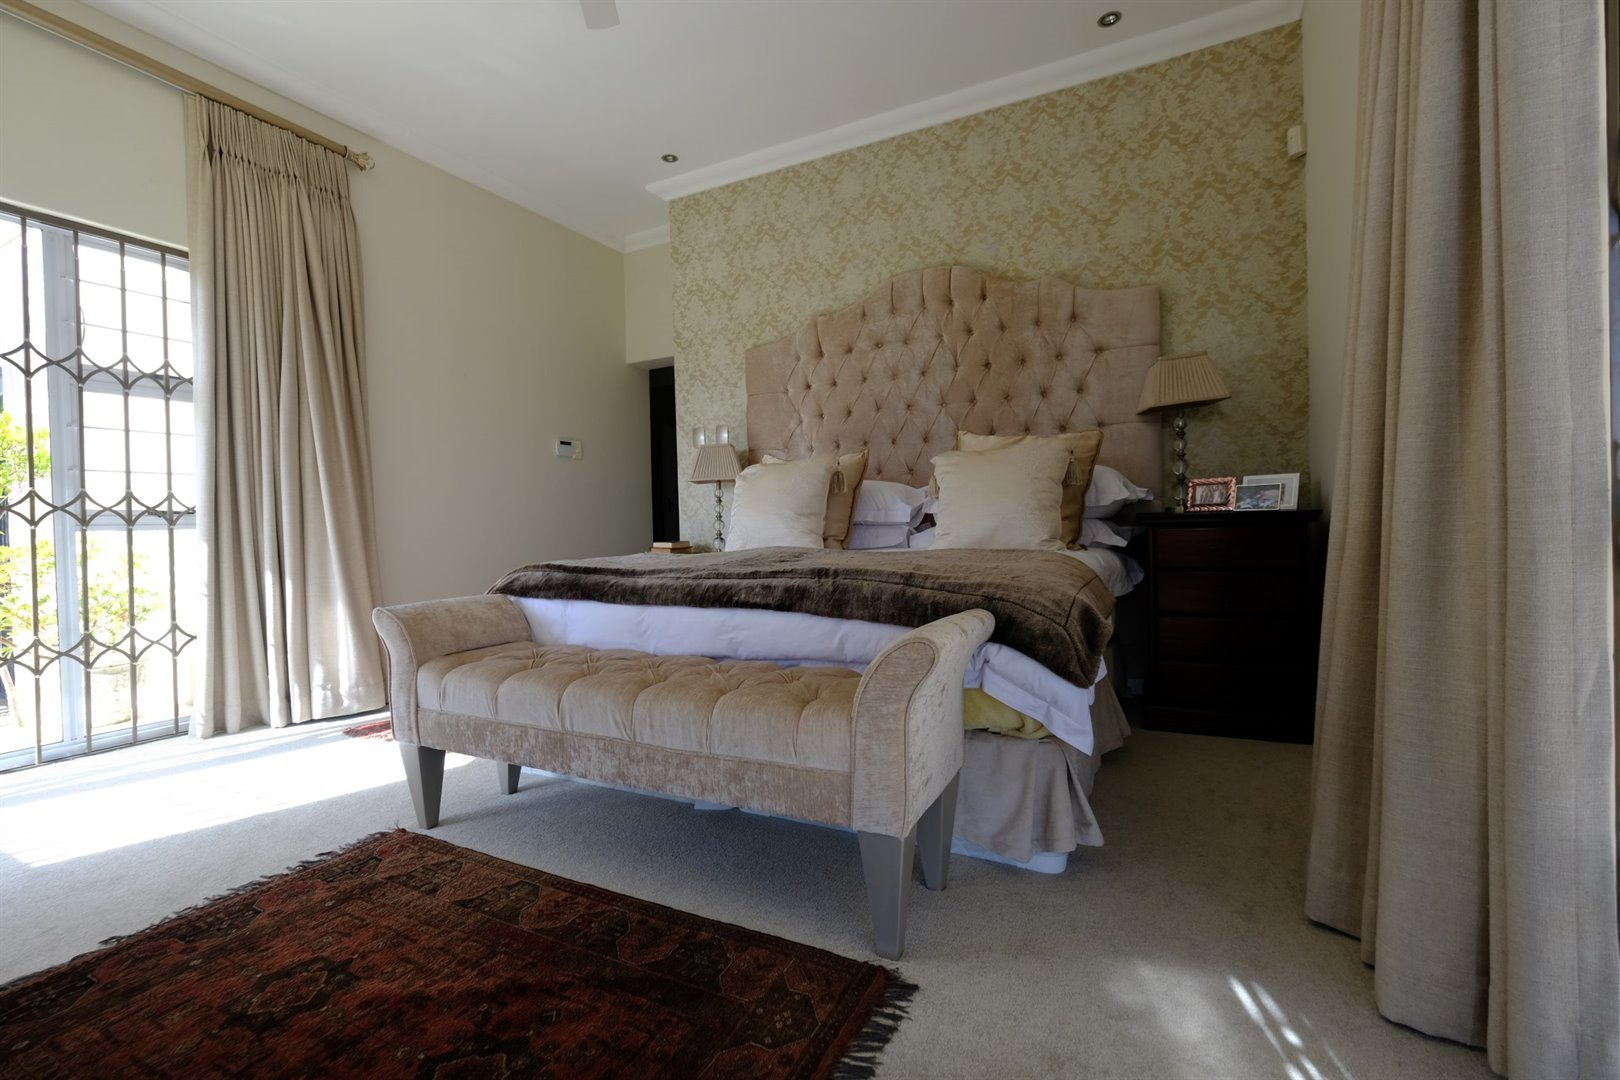 Three Rivers East property for sale. Ref No: 13378538. Picture no 16